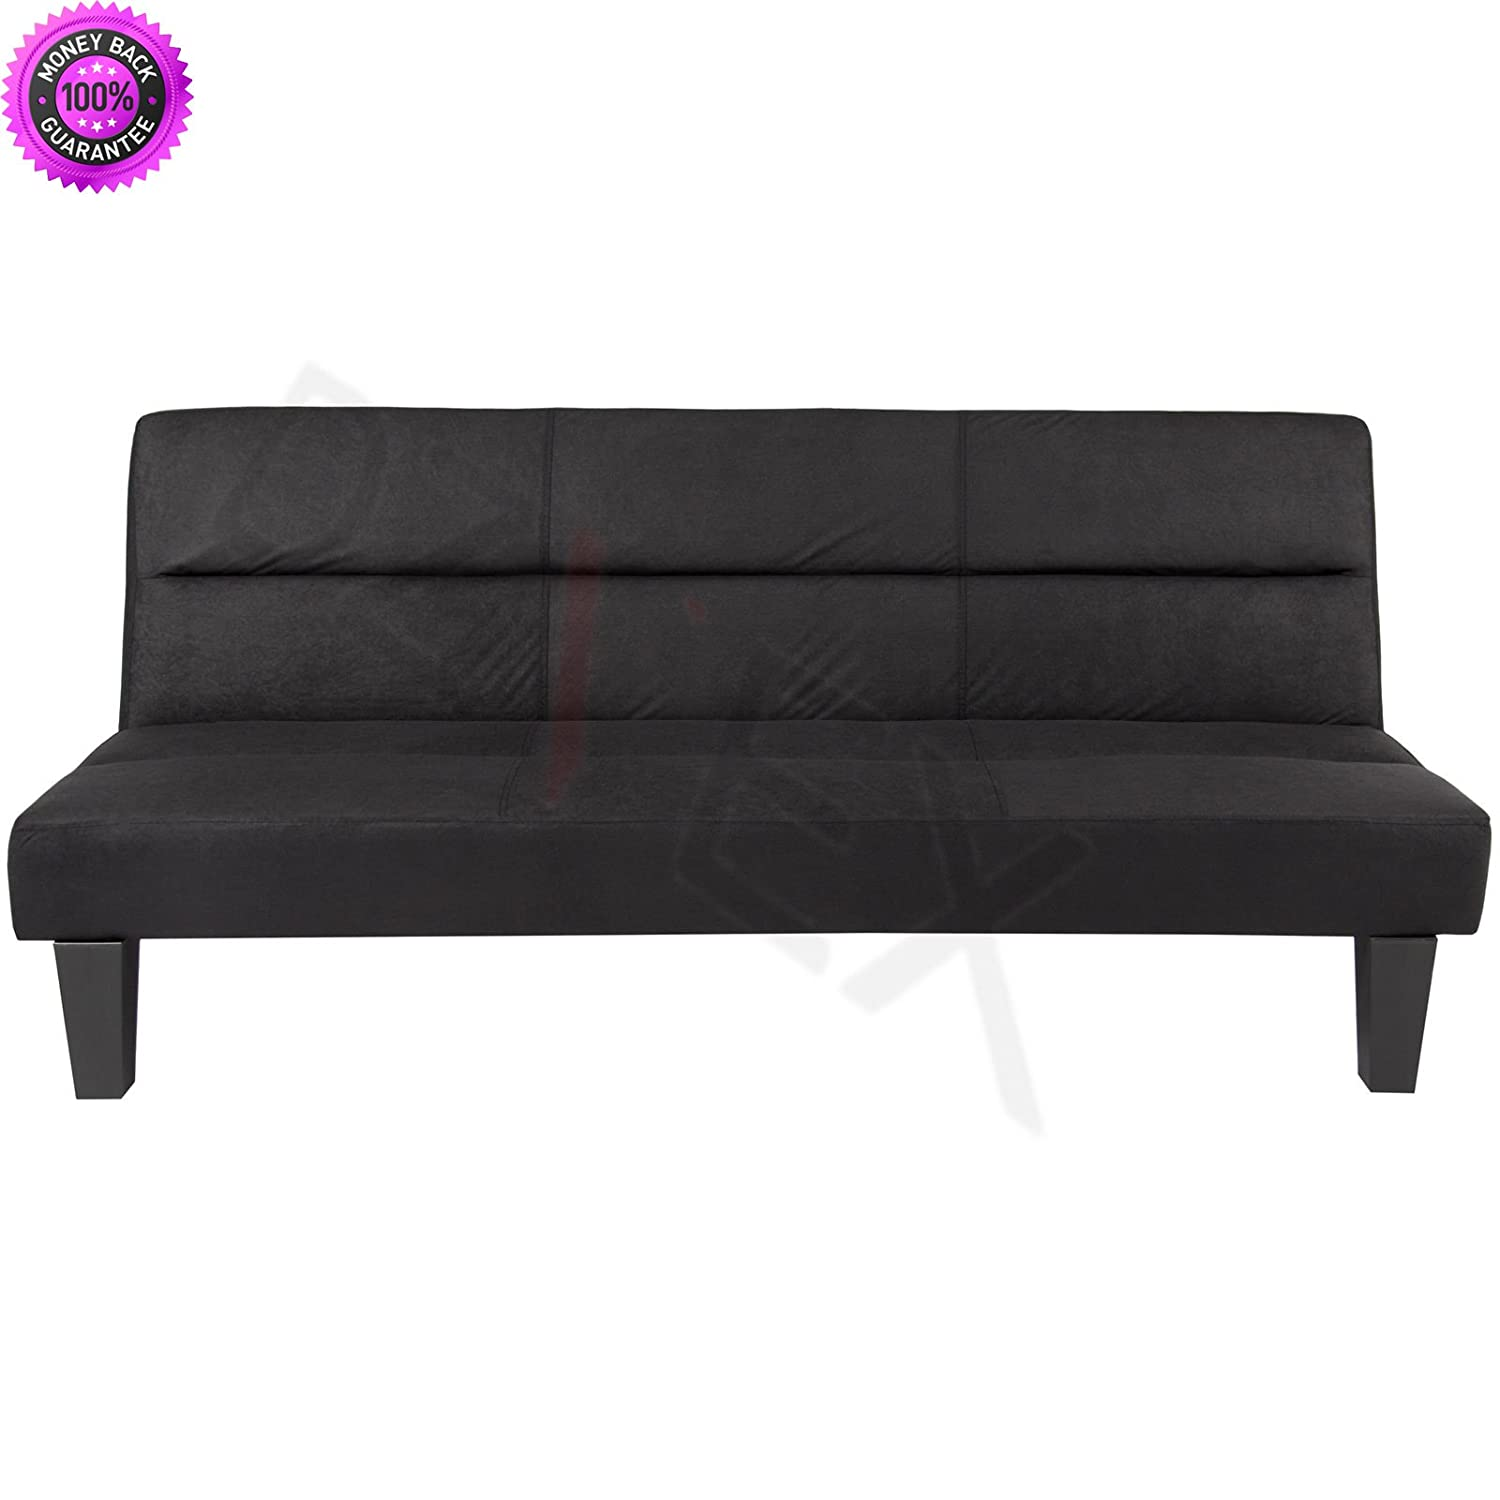 DzVeX Microfiber Futon Folding Couch Sofa (Black) And full size futon fraame and mattress set futon frame and mattress set cheap futons queen size futon frame and mattress set And queen futon